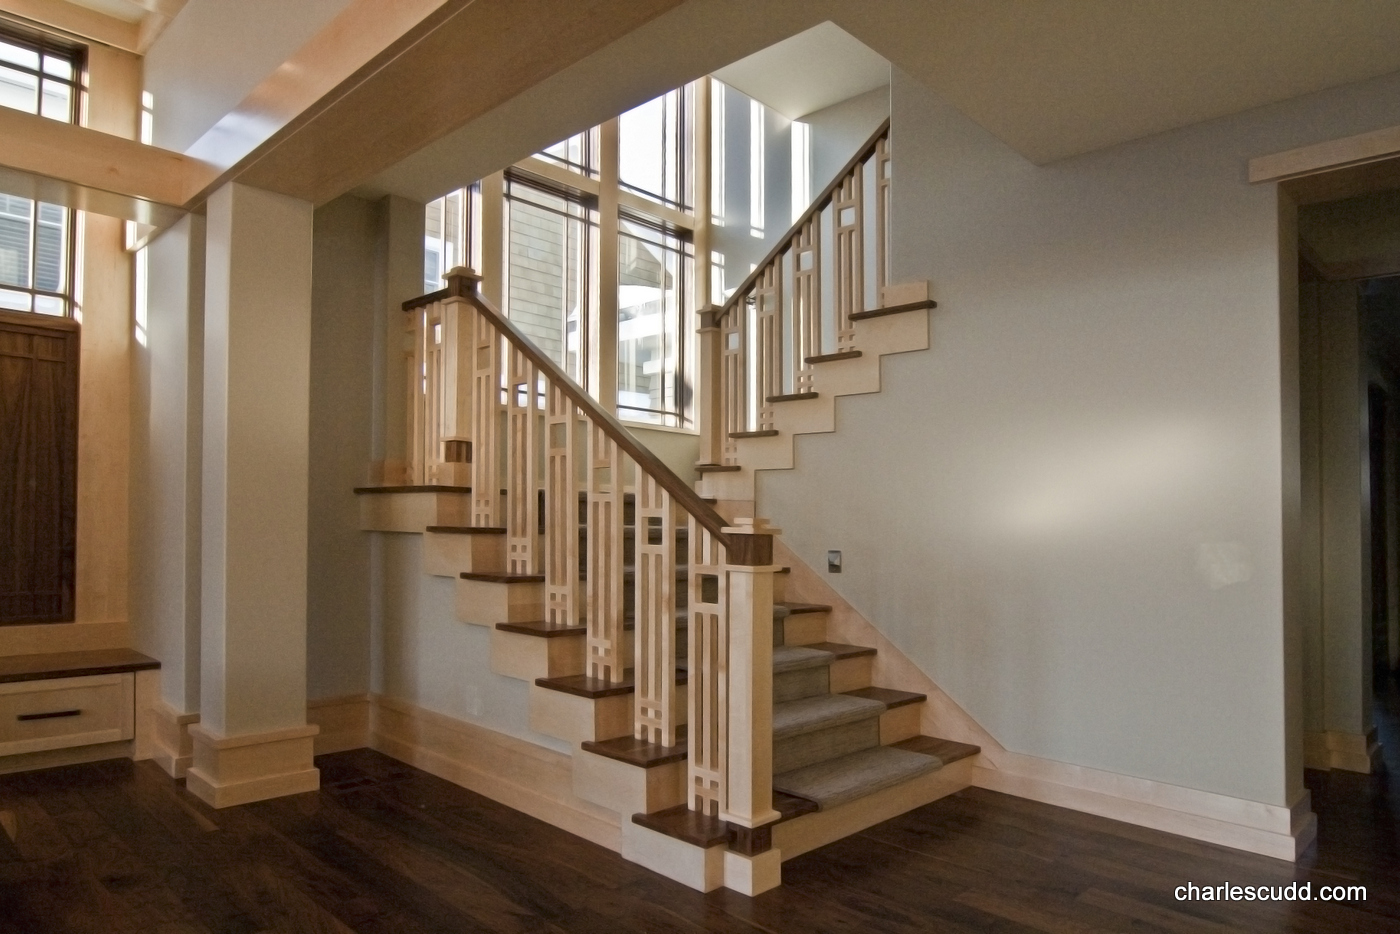 Edina_Halifax-Stairs.jpg